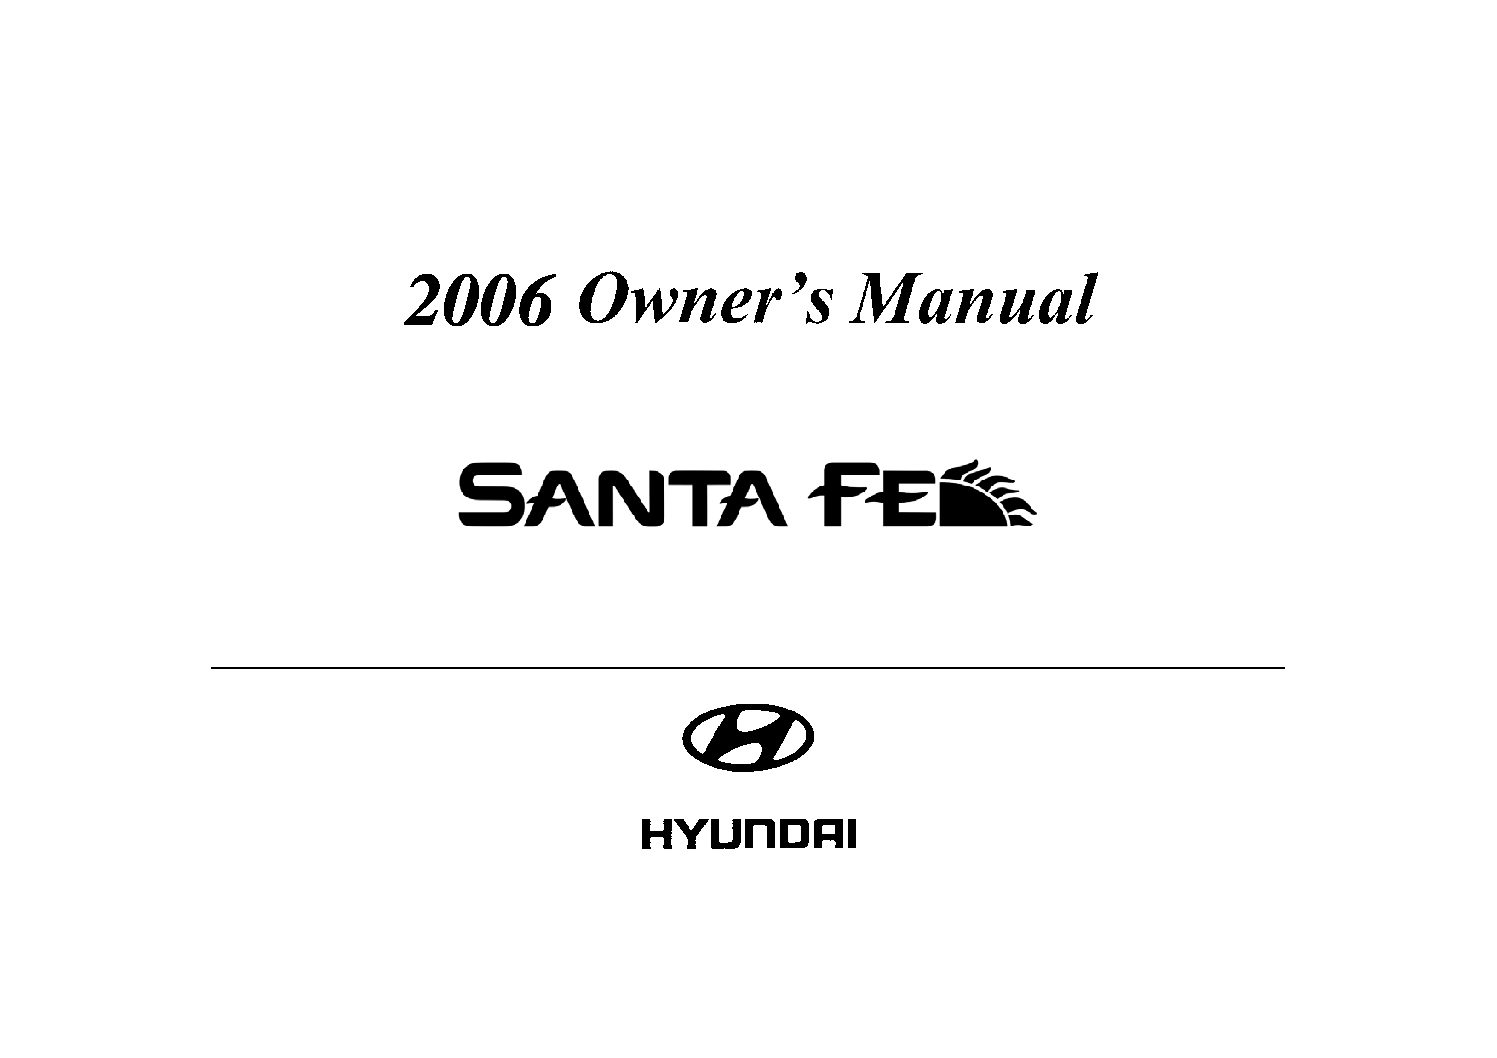 Hyundai Santa Fe Owners Manual